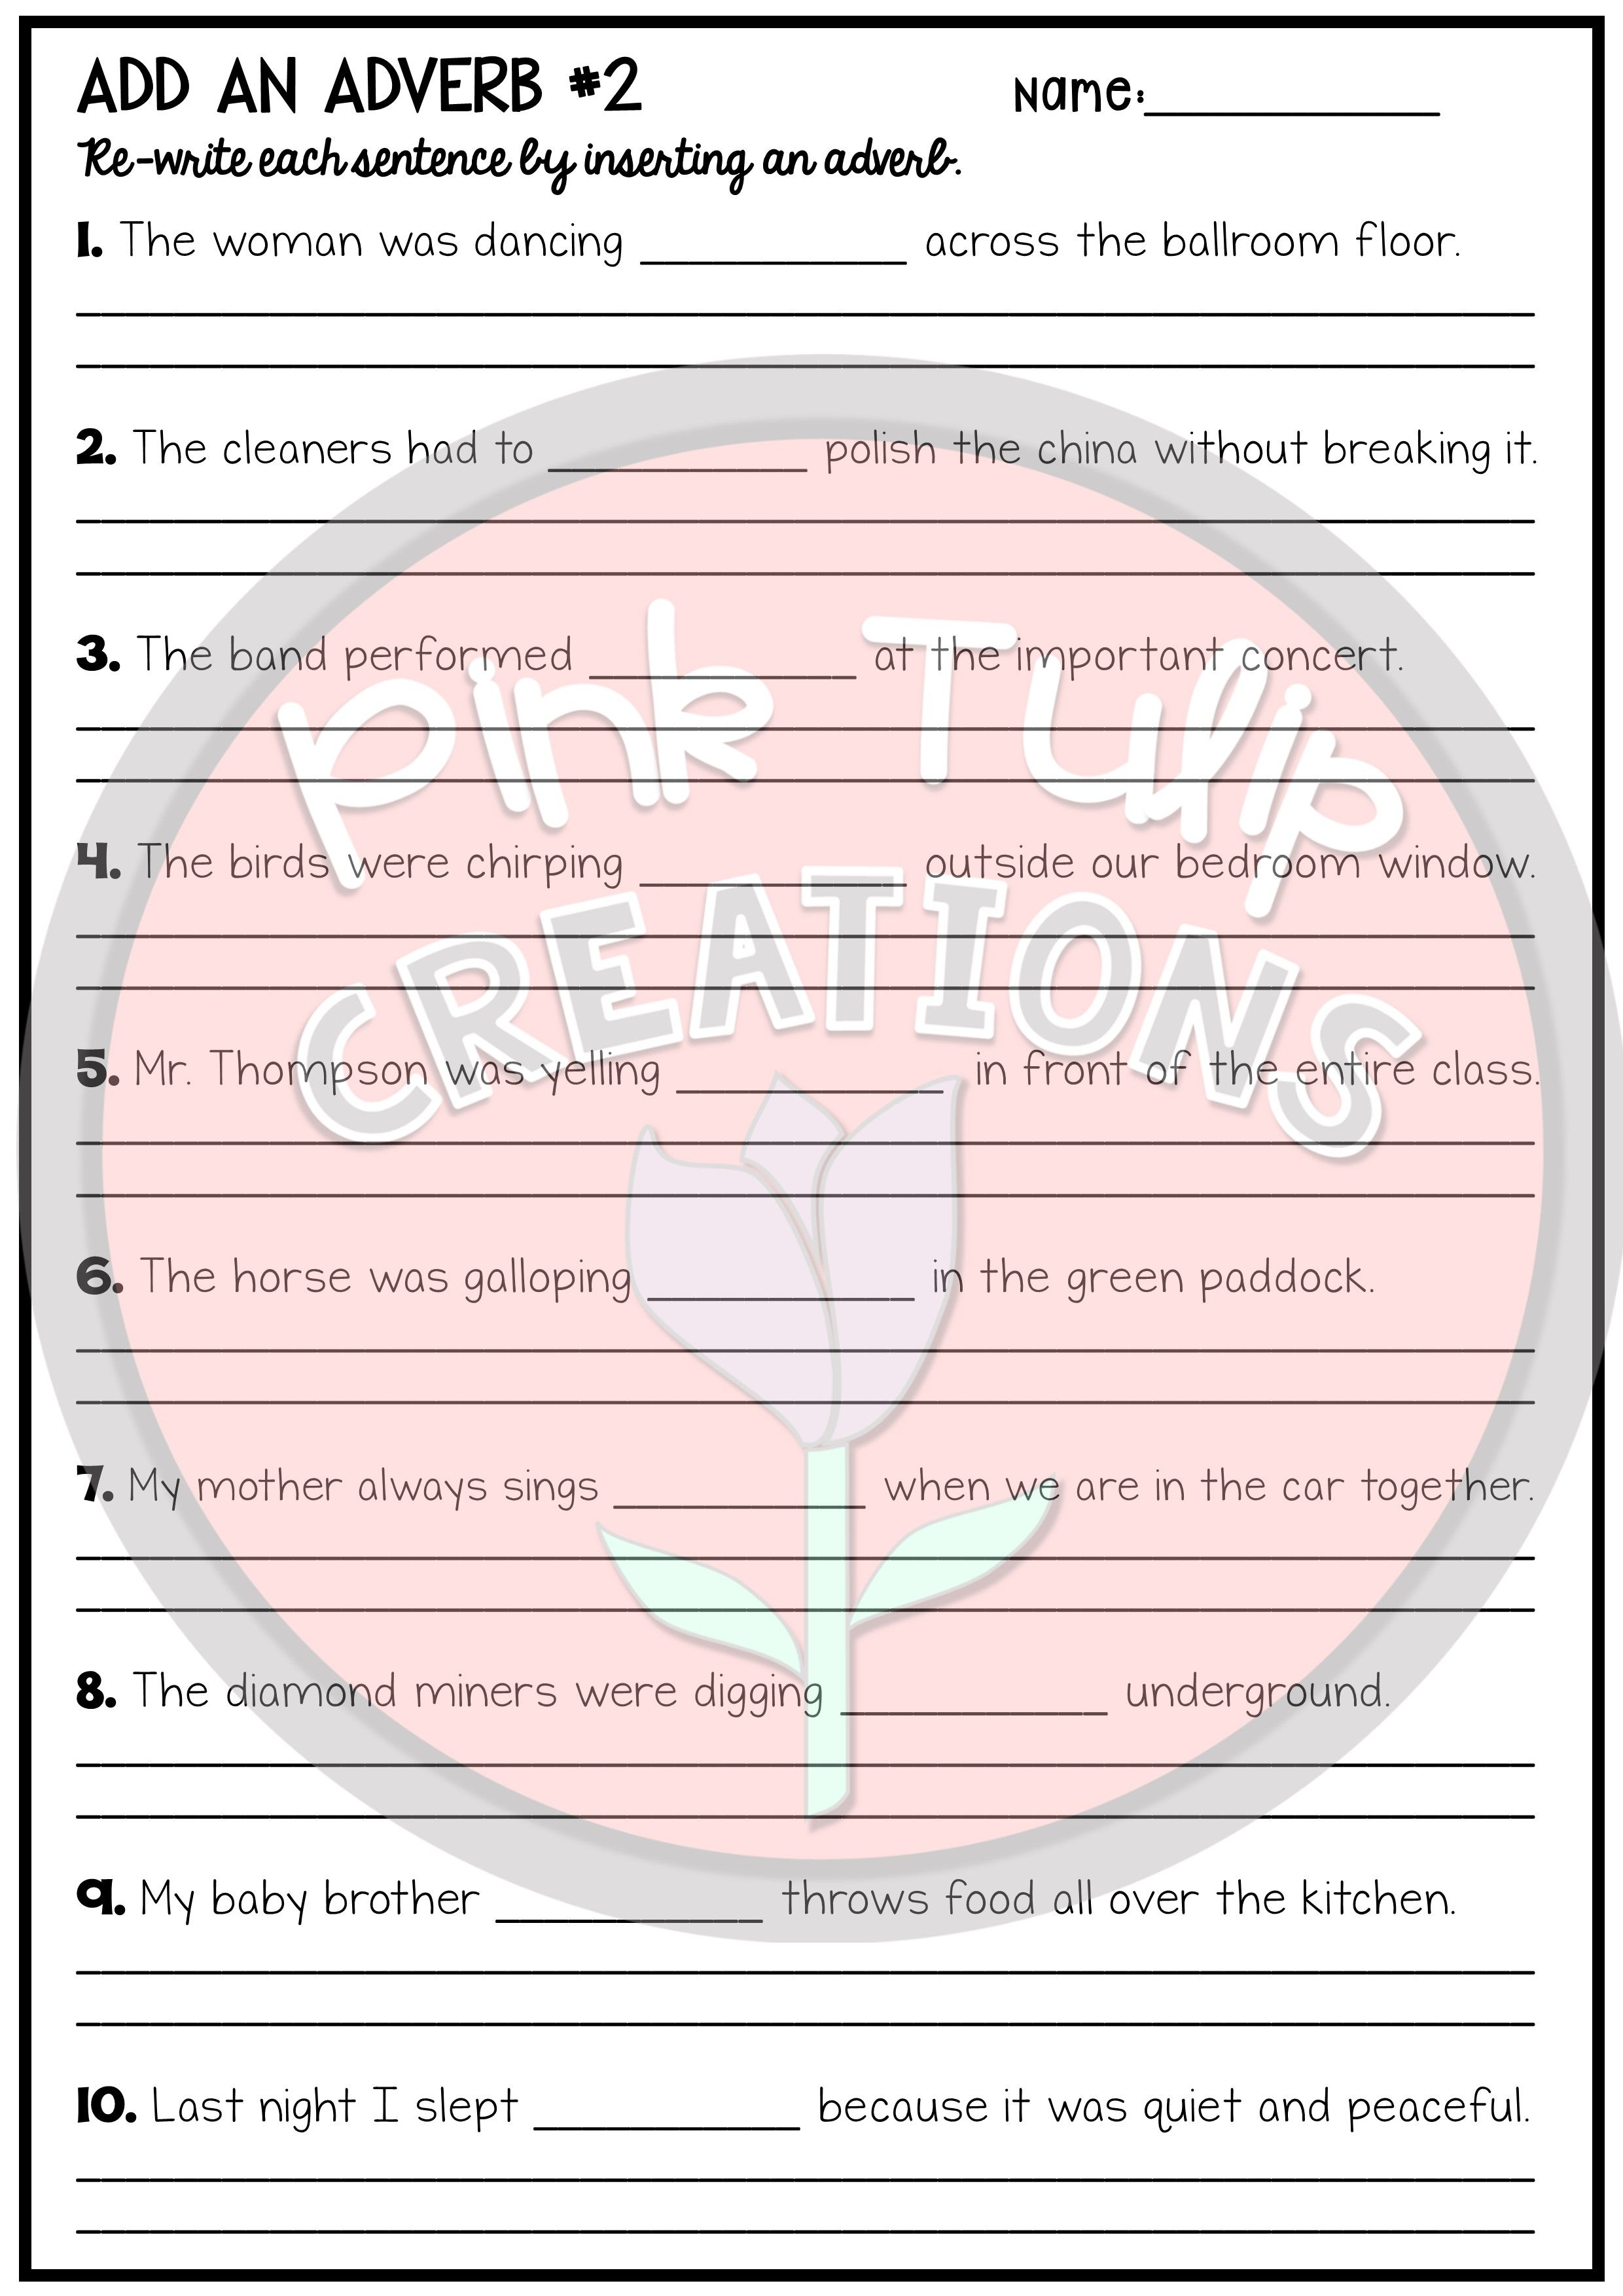 small resolution of Add An Adverb To The Sentences - Worksheet Pack   Adverbs